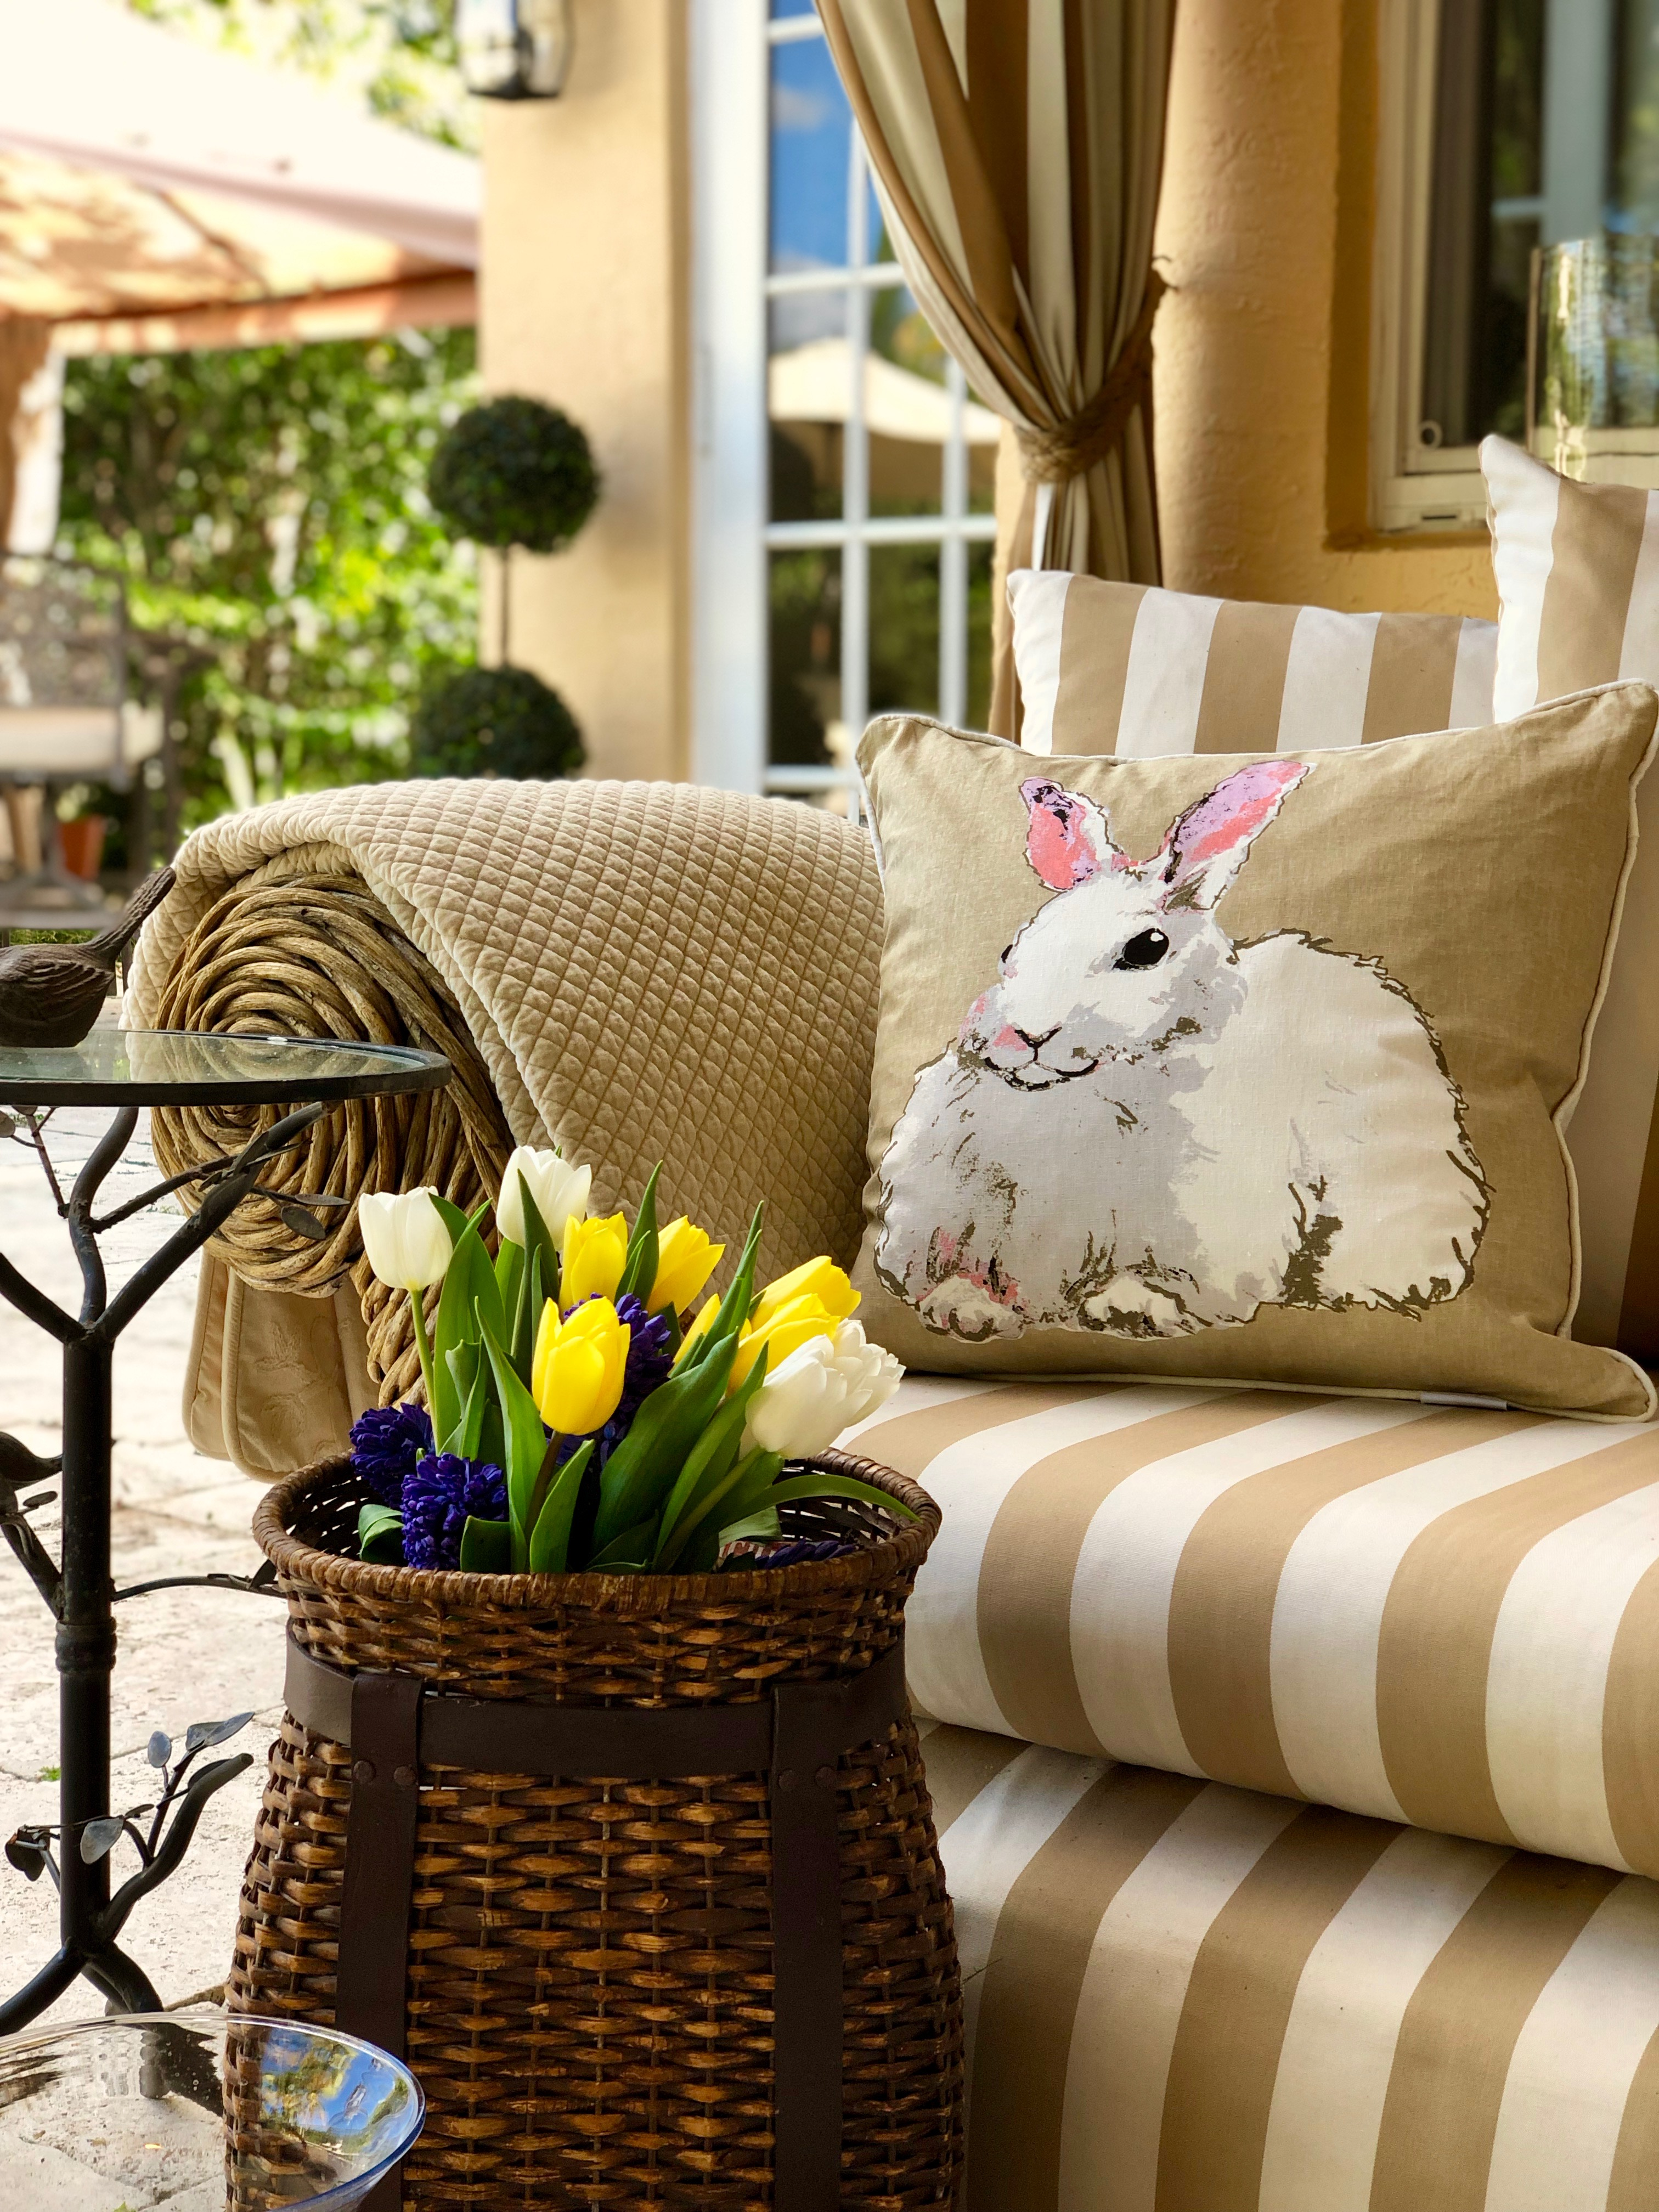 Taupe and white striped chaise with a bunny pillow , fresh tulips and a comfy throw